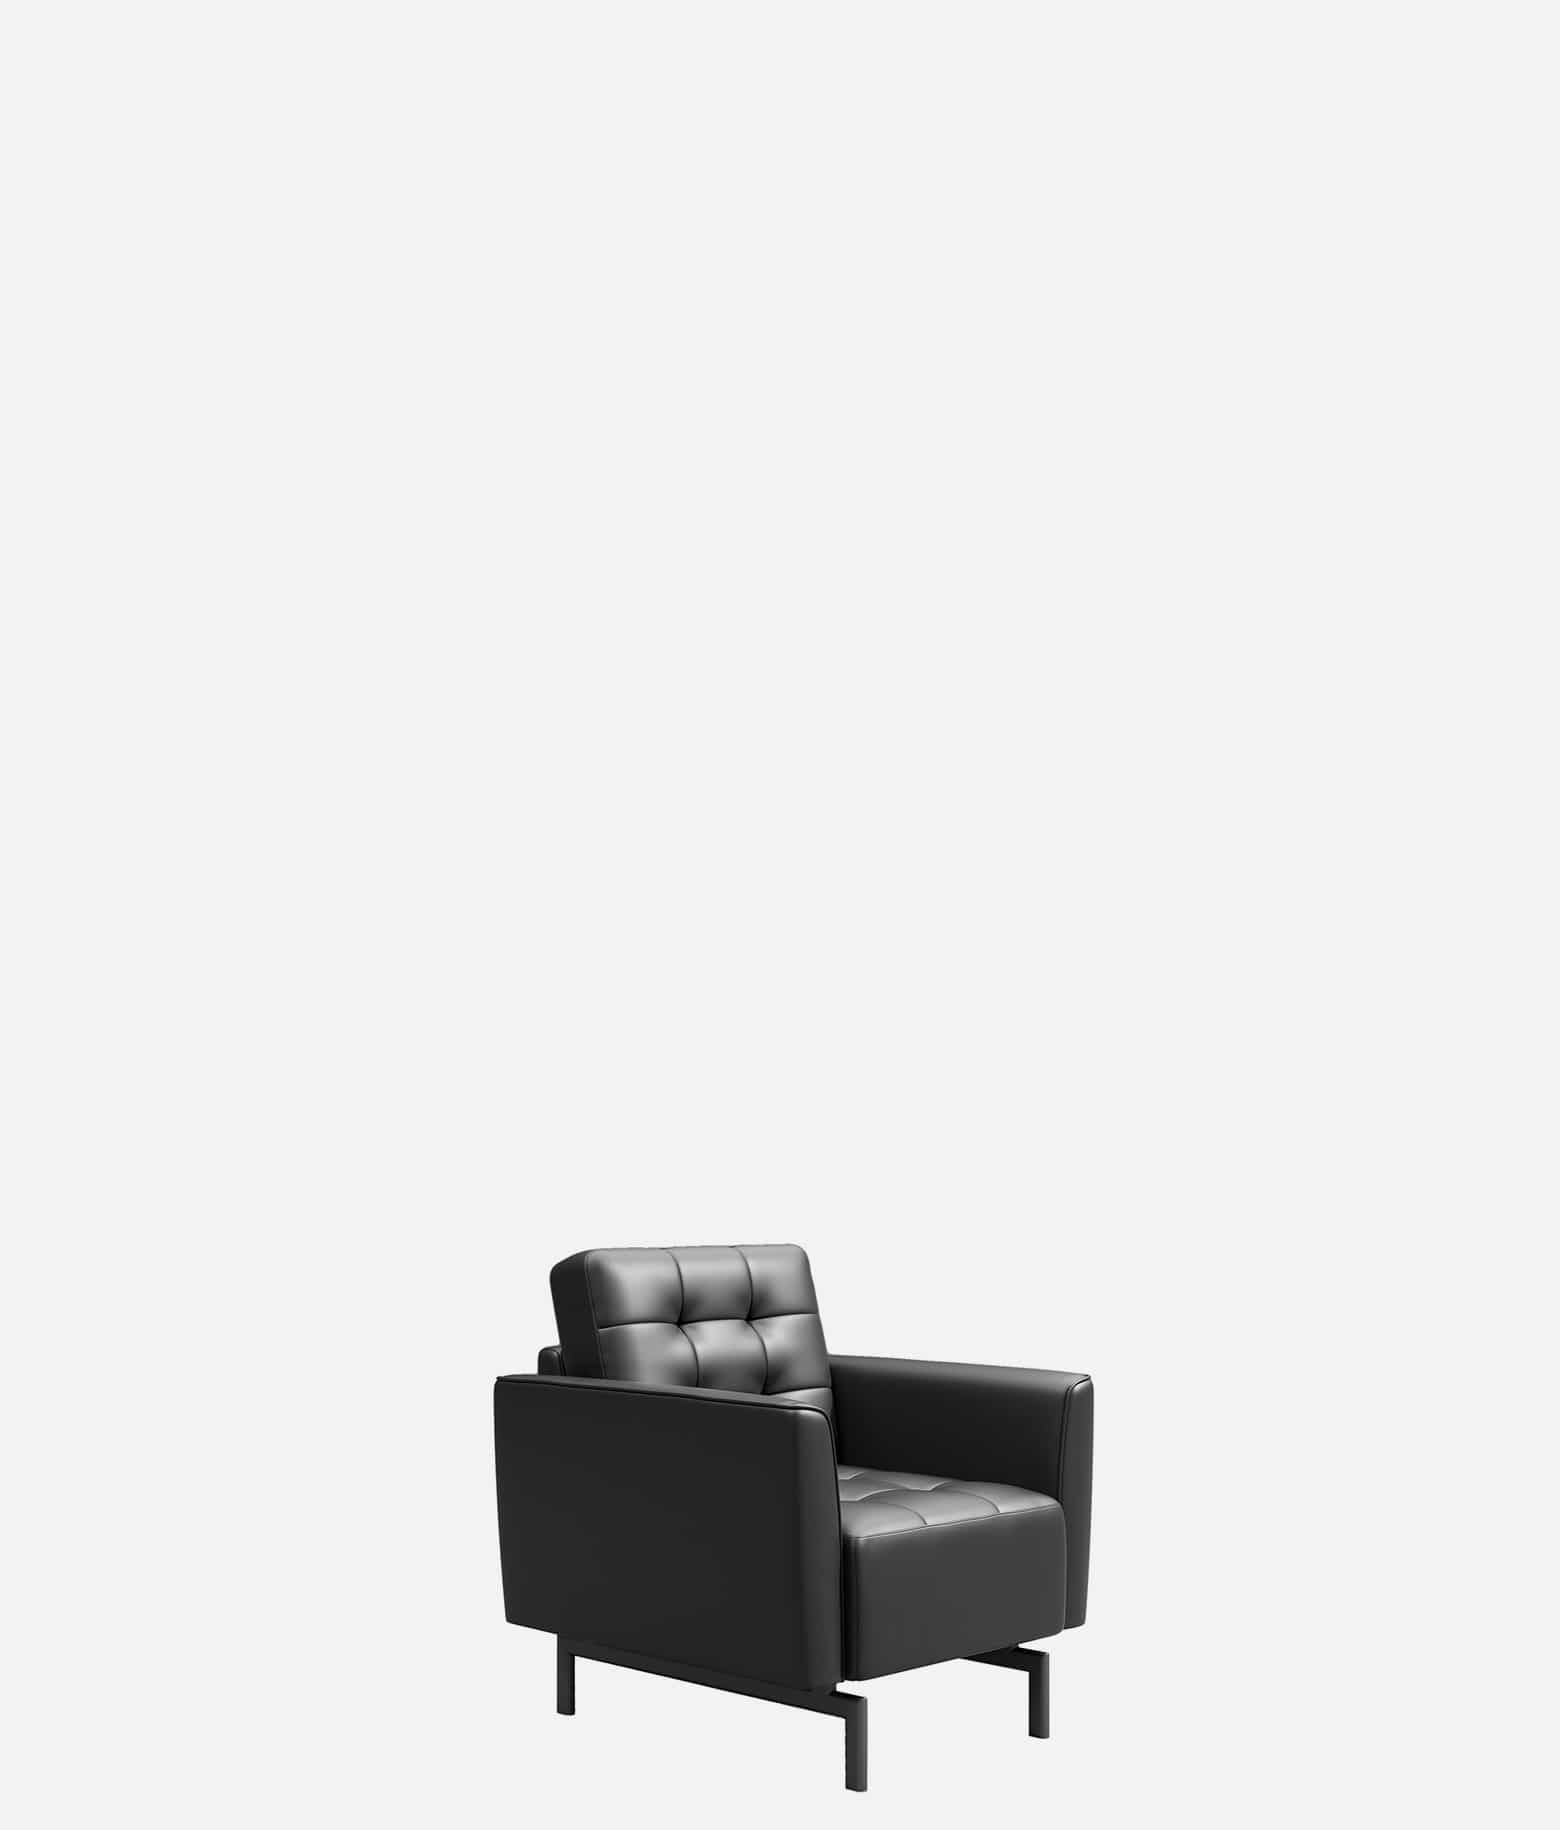 D1 Lounge Seating Systems m